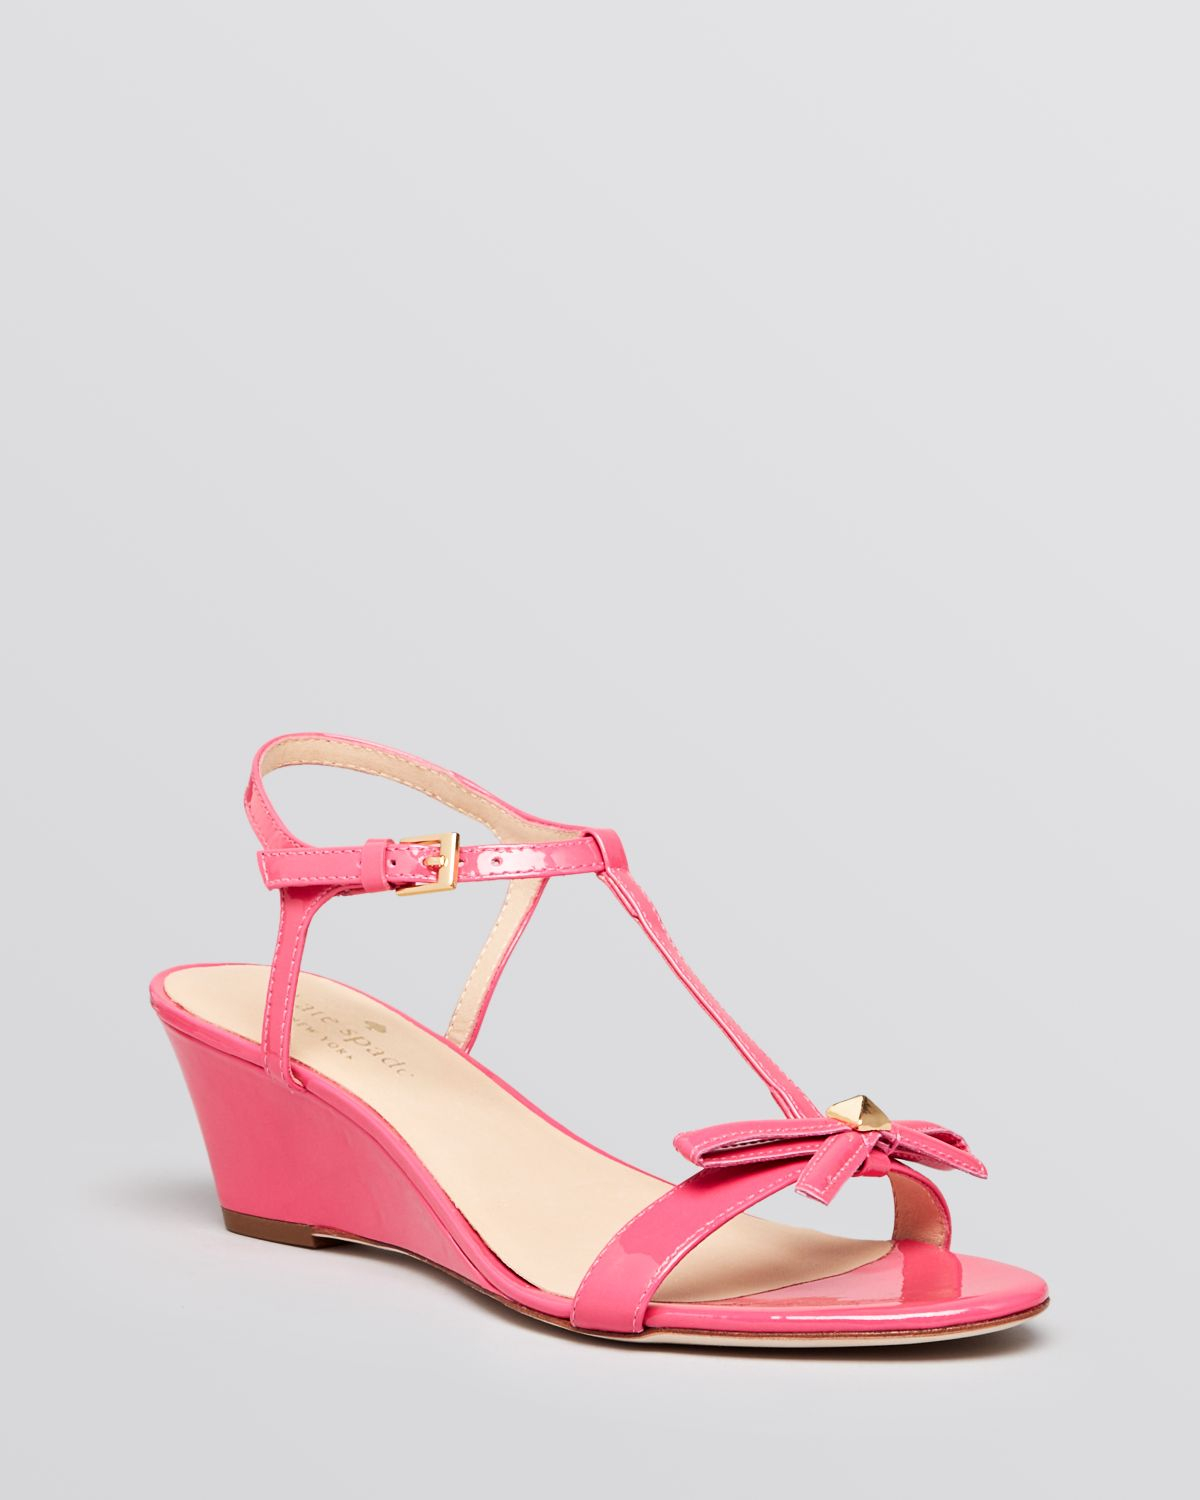 ee1994004b1 Lyst - Kate Spade Wedge Sandals Donna T Strap in Pink